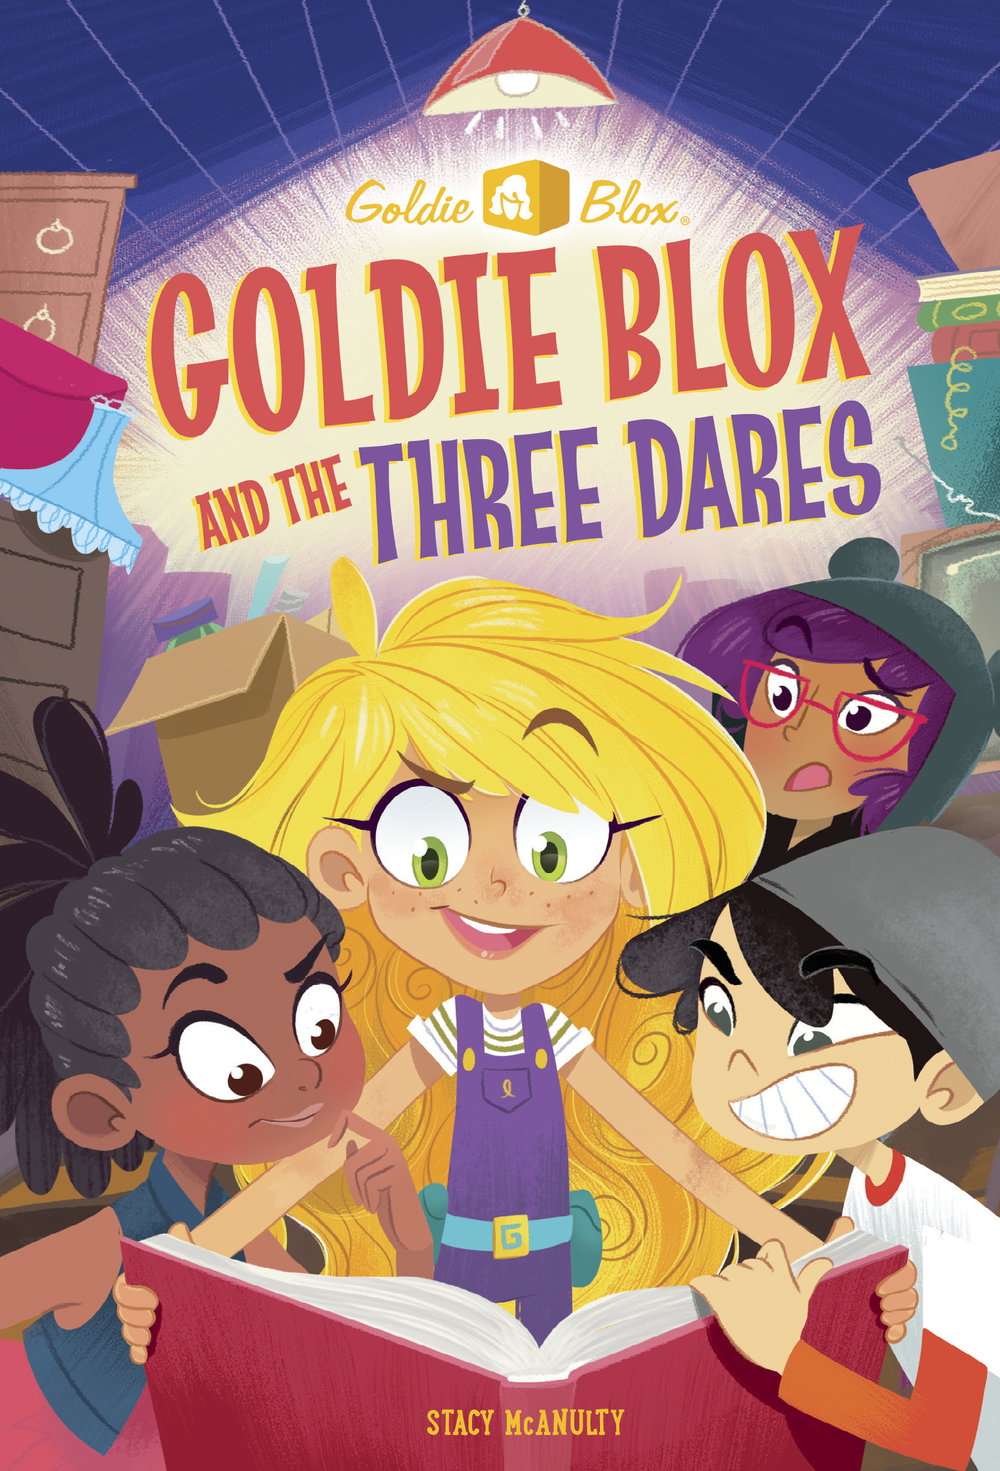 McAnulty, Stacy GOLDIE BLOX #2 AND THE THREE DARES 2017_05 - CB - RLM LK.jpg